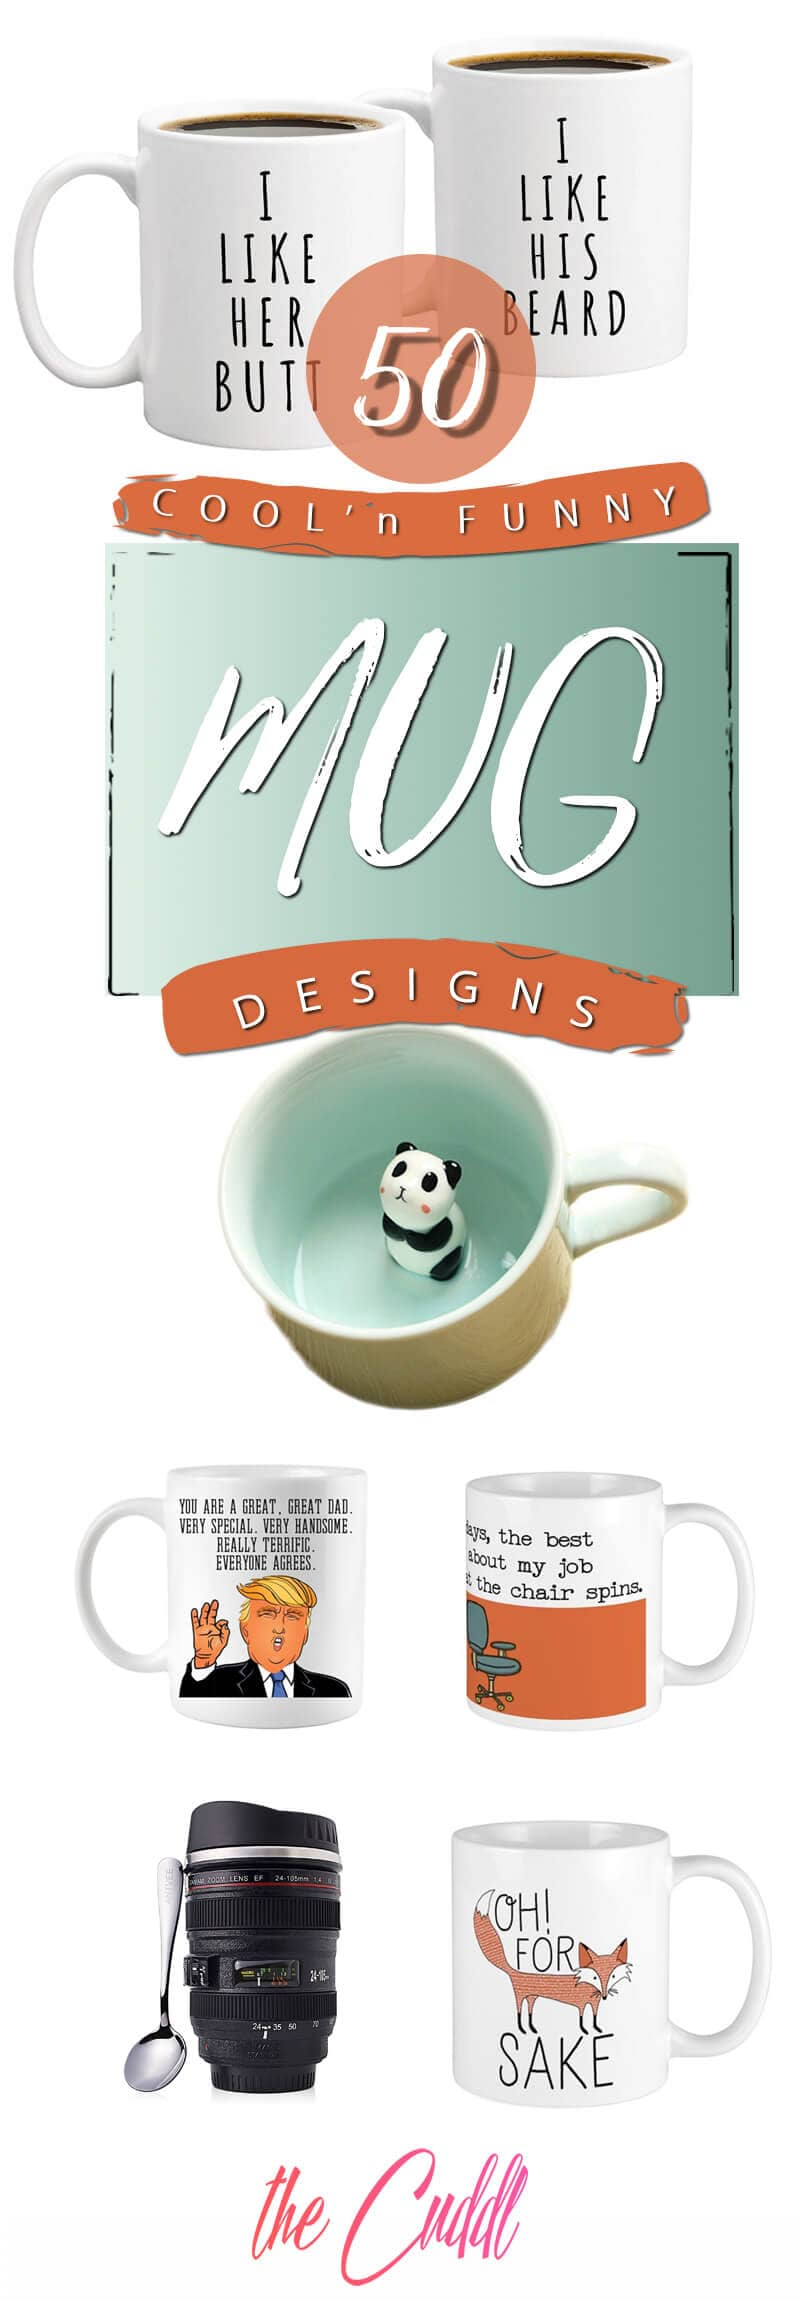 Radiant Ny Mug Designs To Give To Everyone On Your List Ny Mug Designs To Give To Everyone On Your List 2018 Ange Line Tetrault Hidden Animal Teacups furniture Hidden Animal Teacups